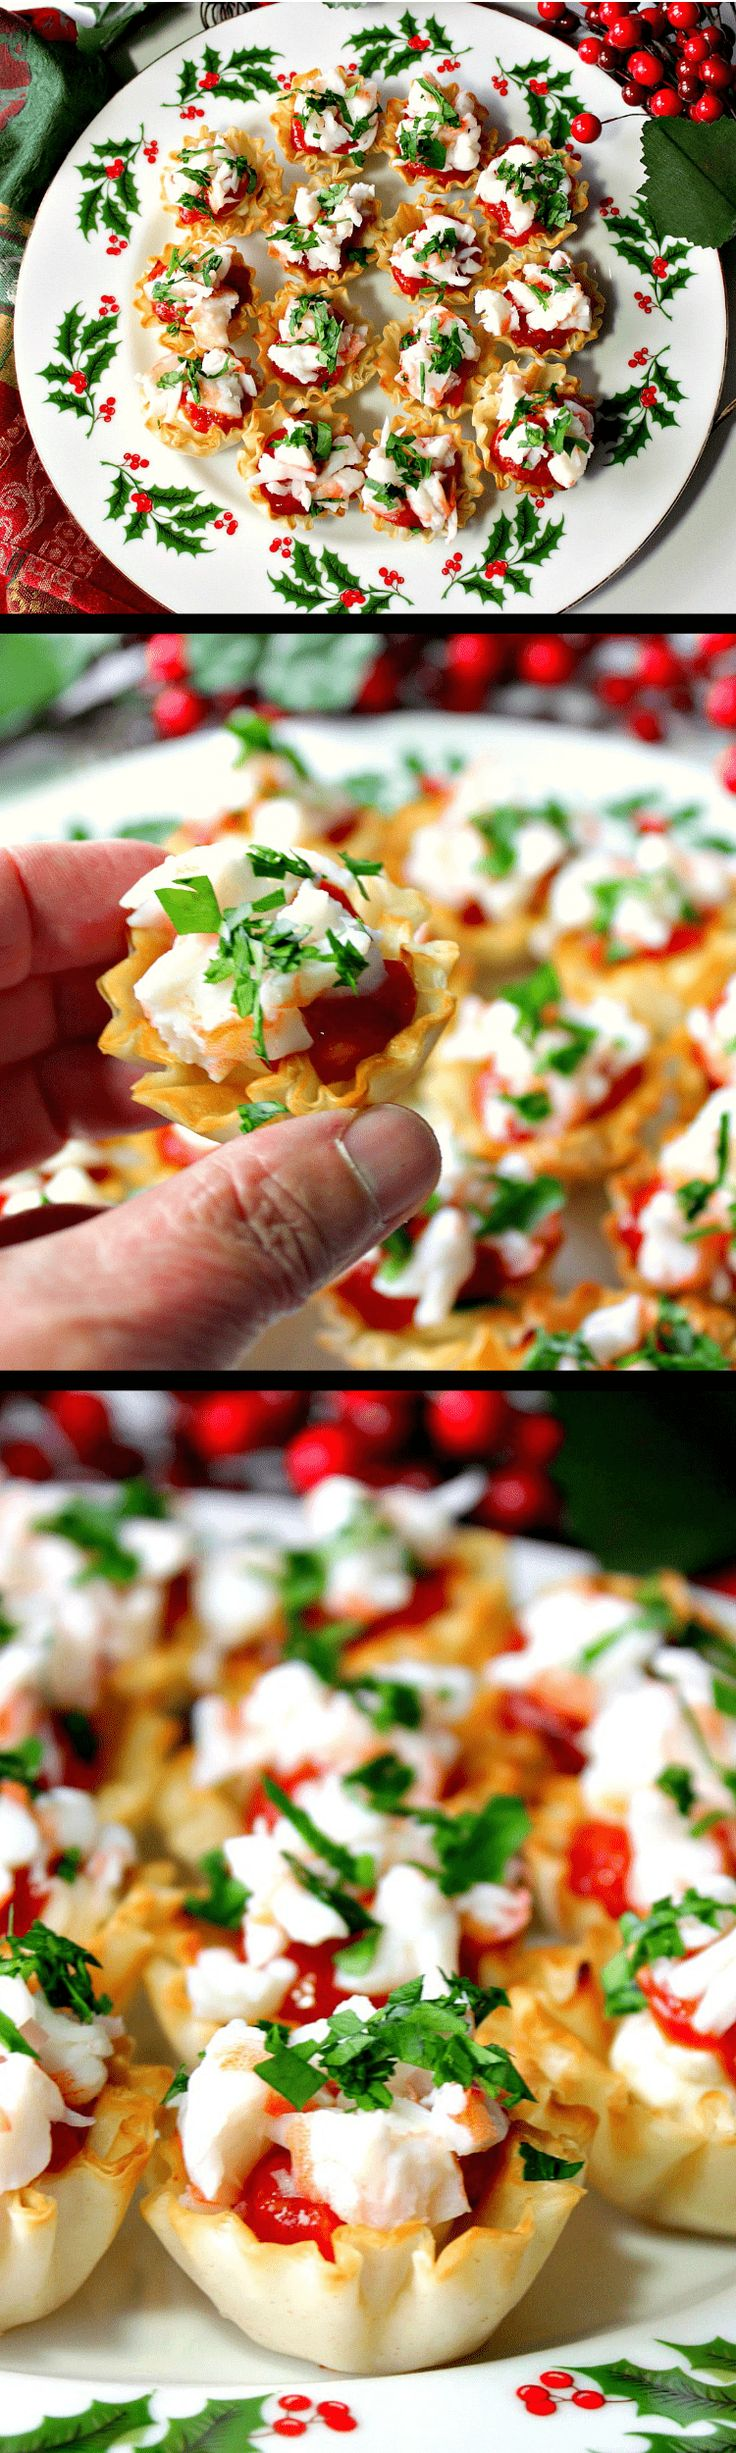 These festive Shrimp Cocktail Appetizer Bites take only minutes to make, but they look like you slaved for hours. Plus they cheap and cheerful which makes them perfect for this, or any, holiday gathering. - Kudos Kitchen by Renee